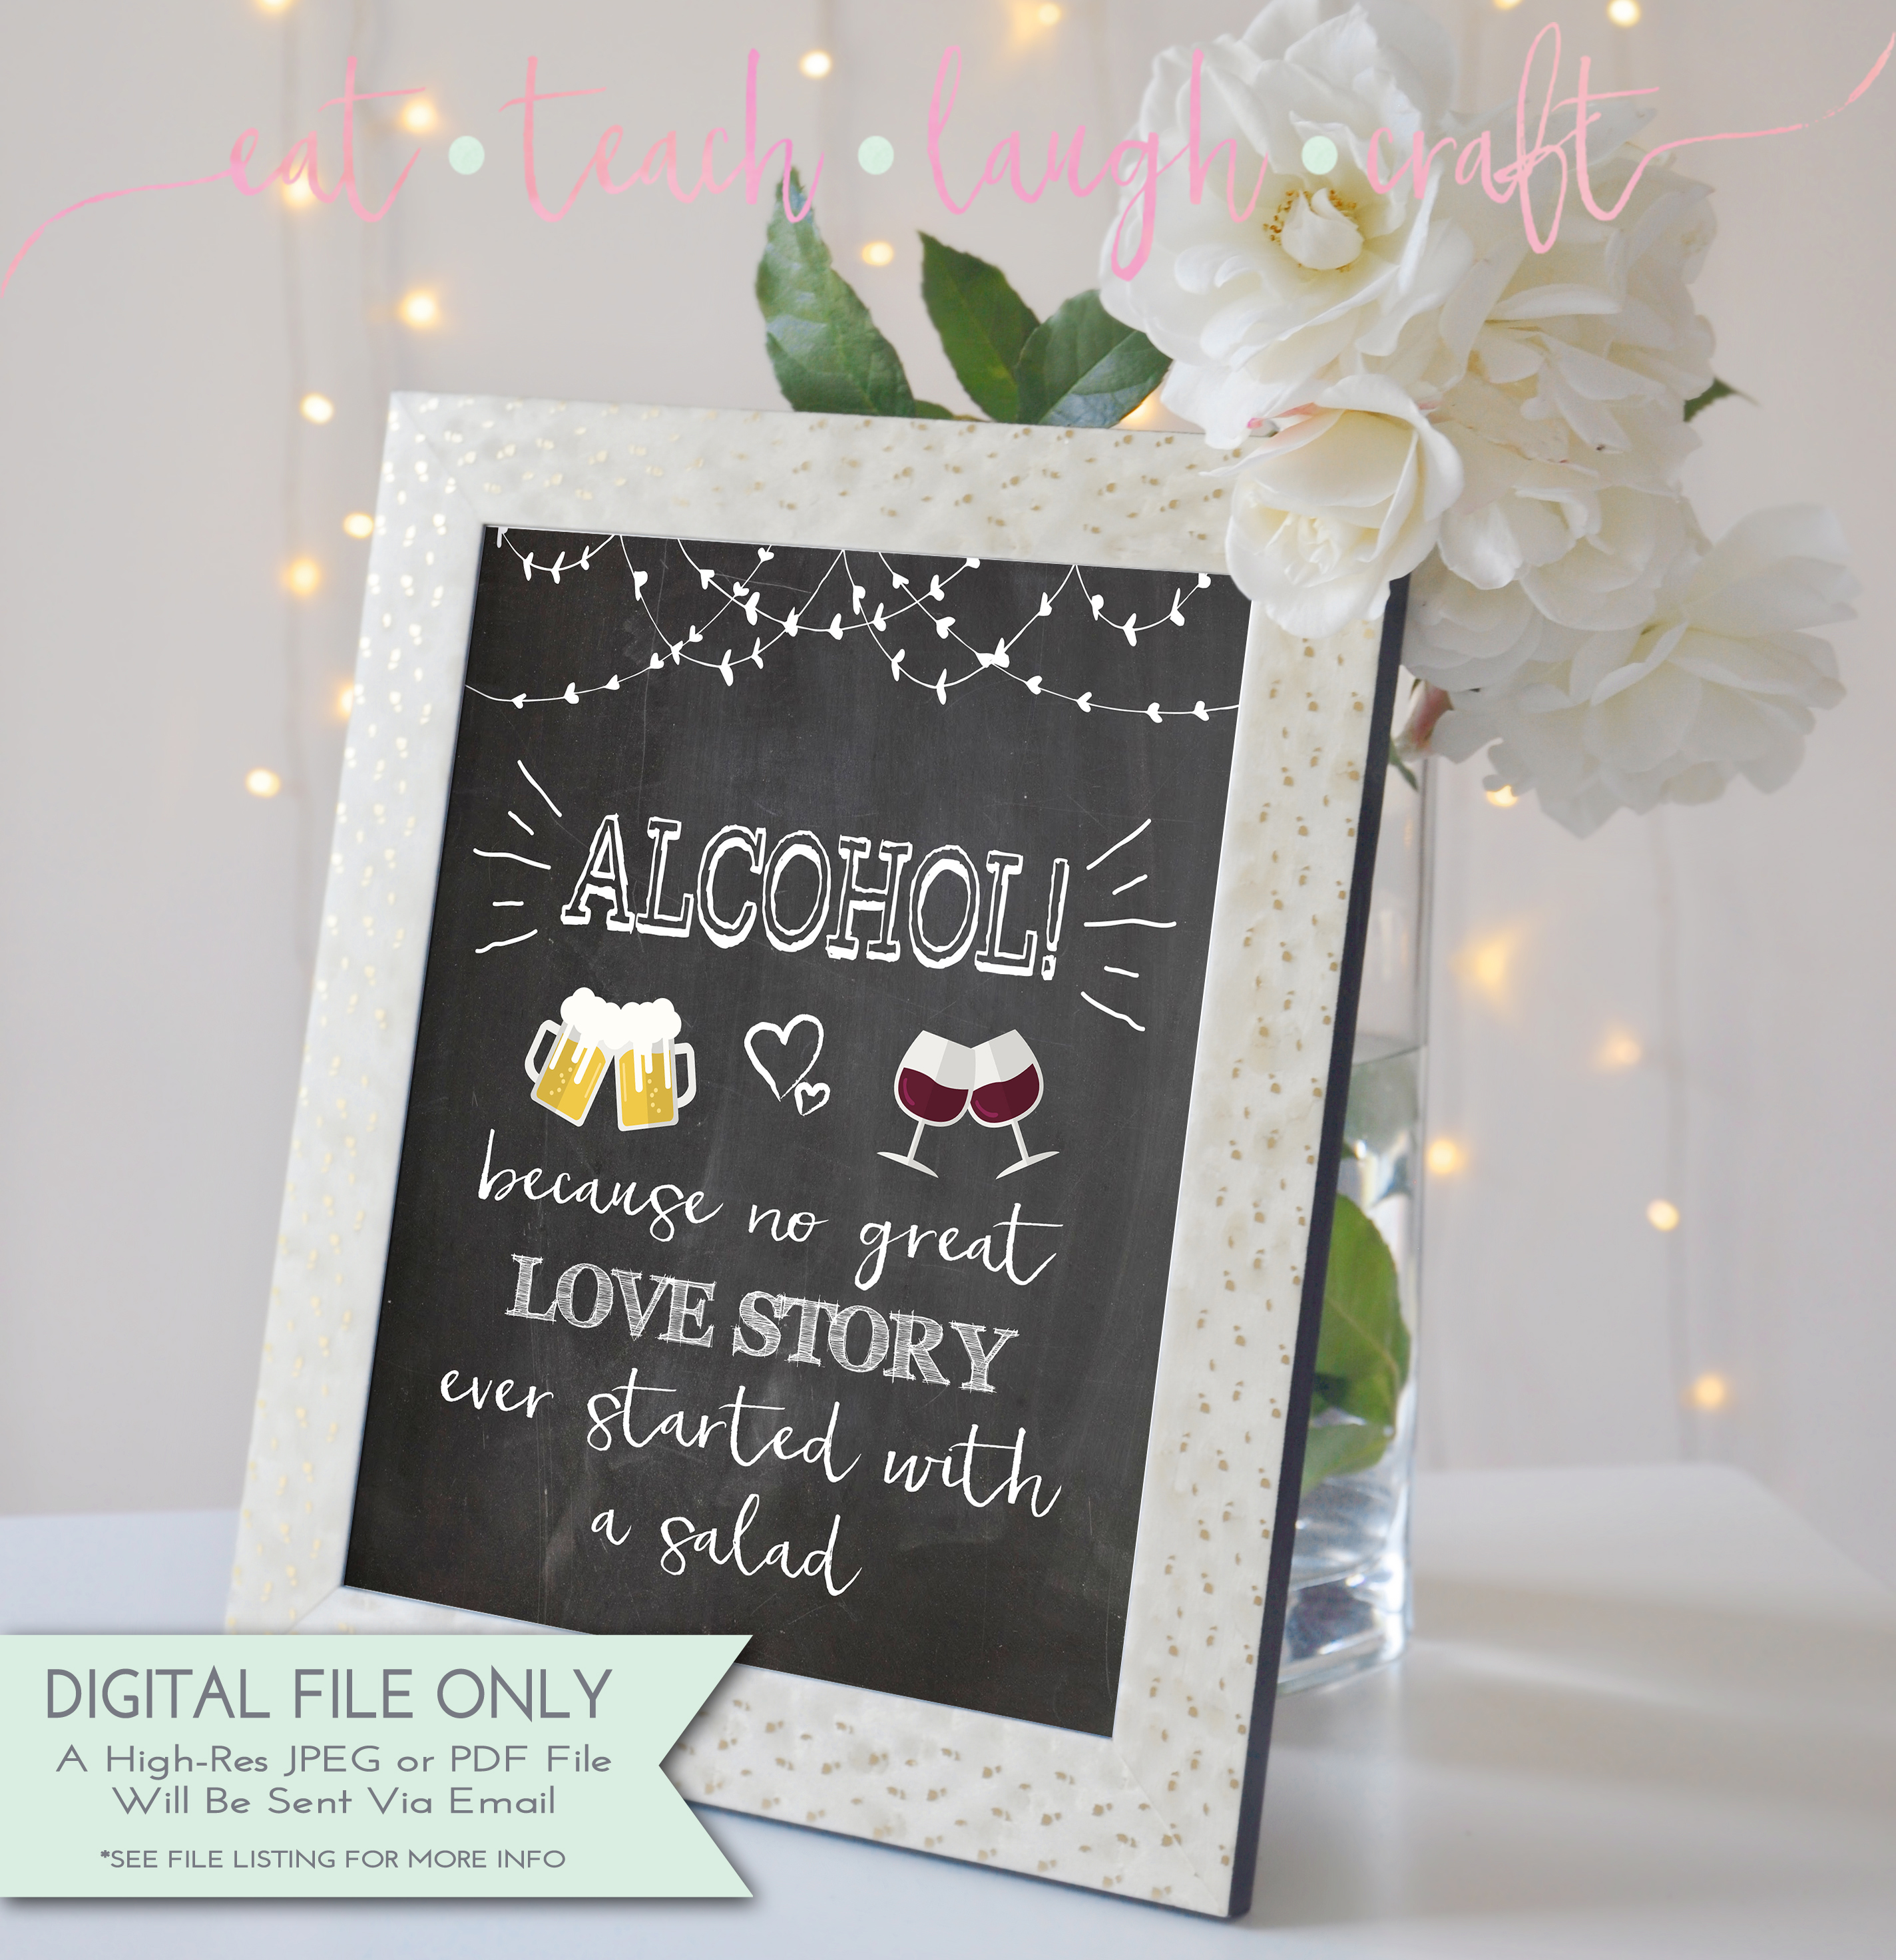 Pink /& Gold Floral Deco Alcohol Bar Love Story Wedding Sign Print